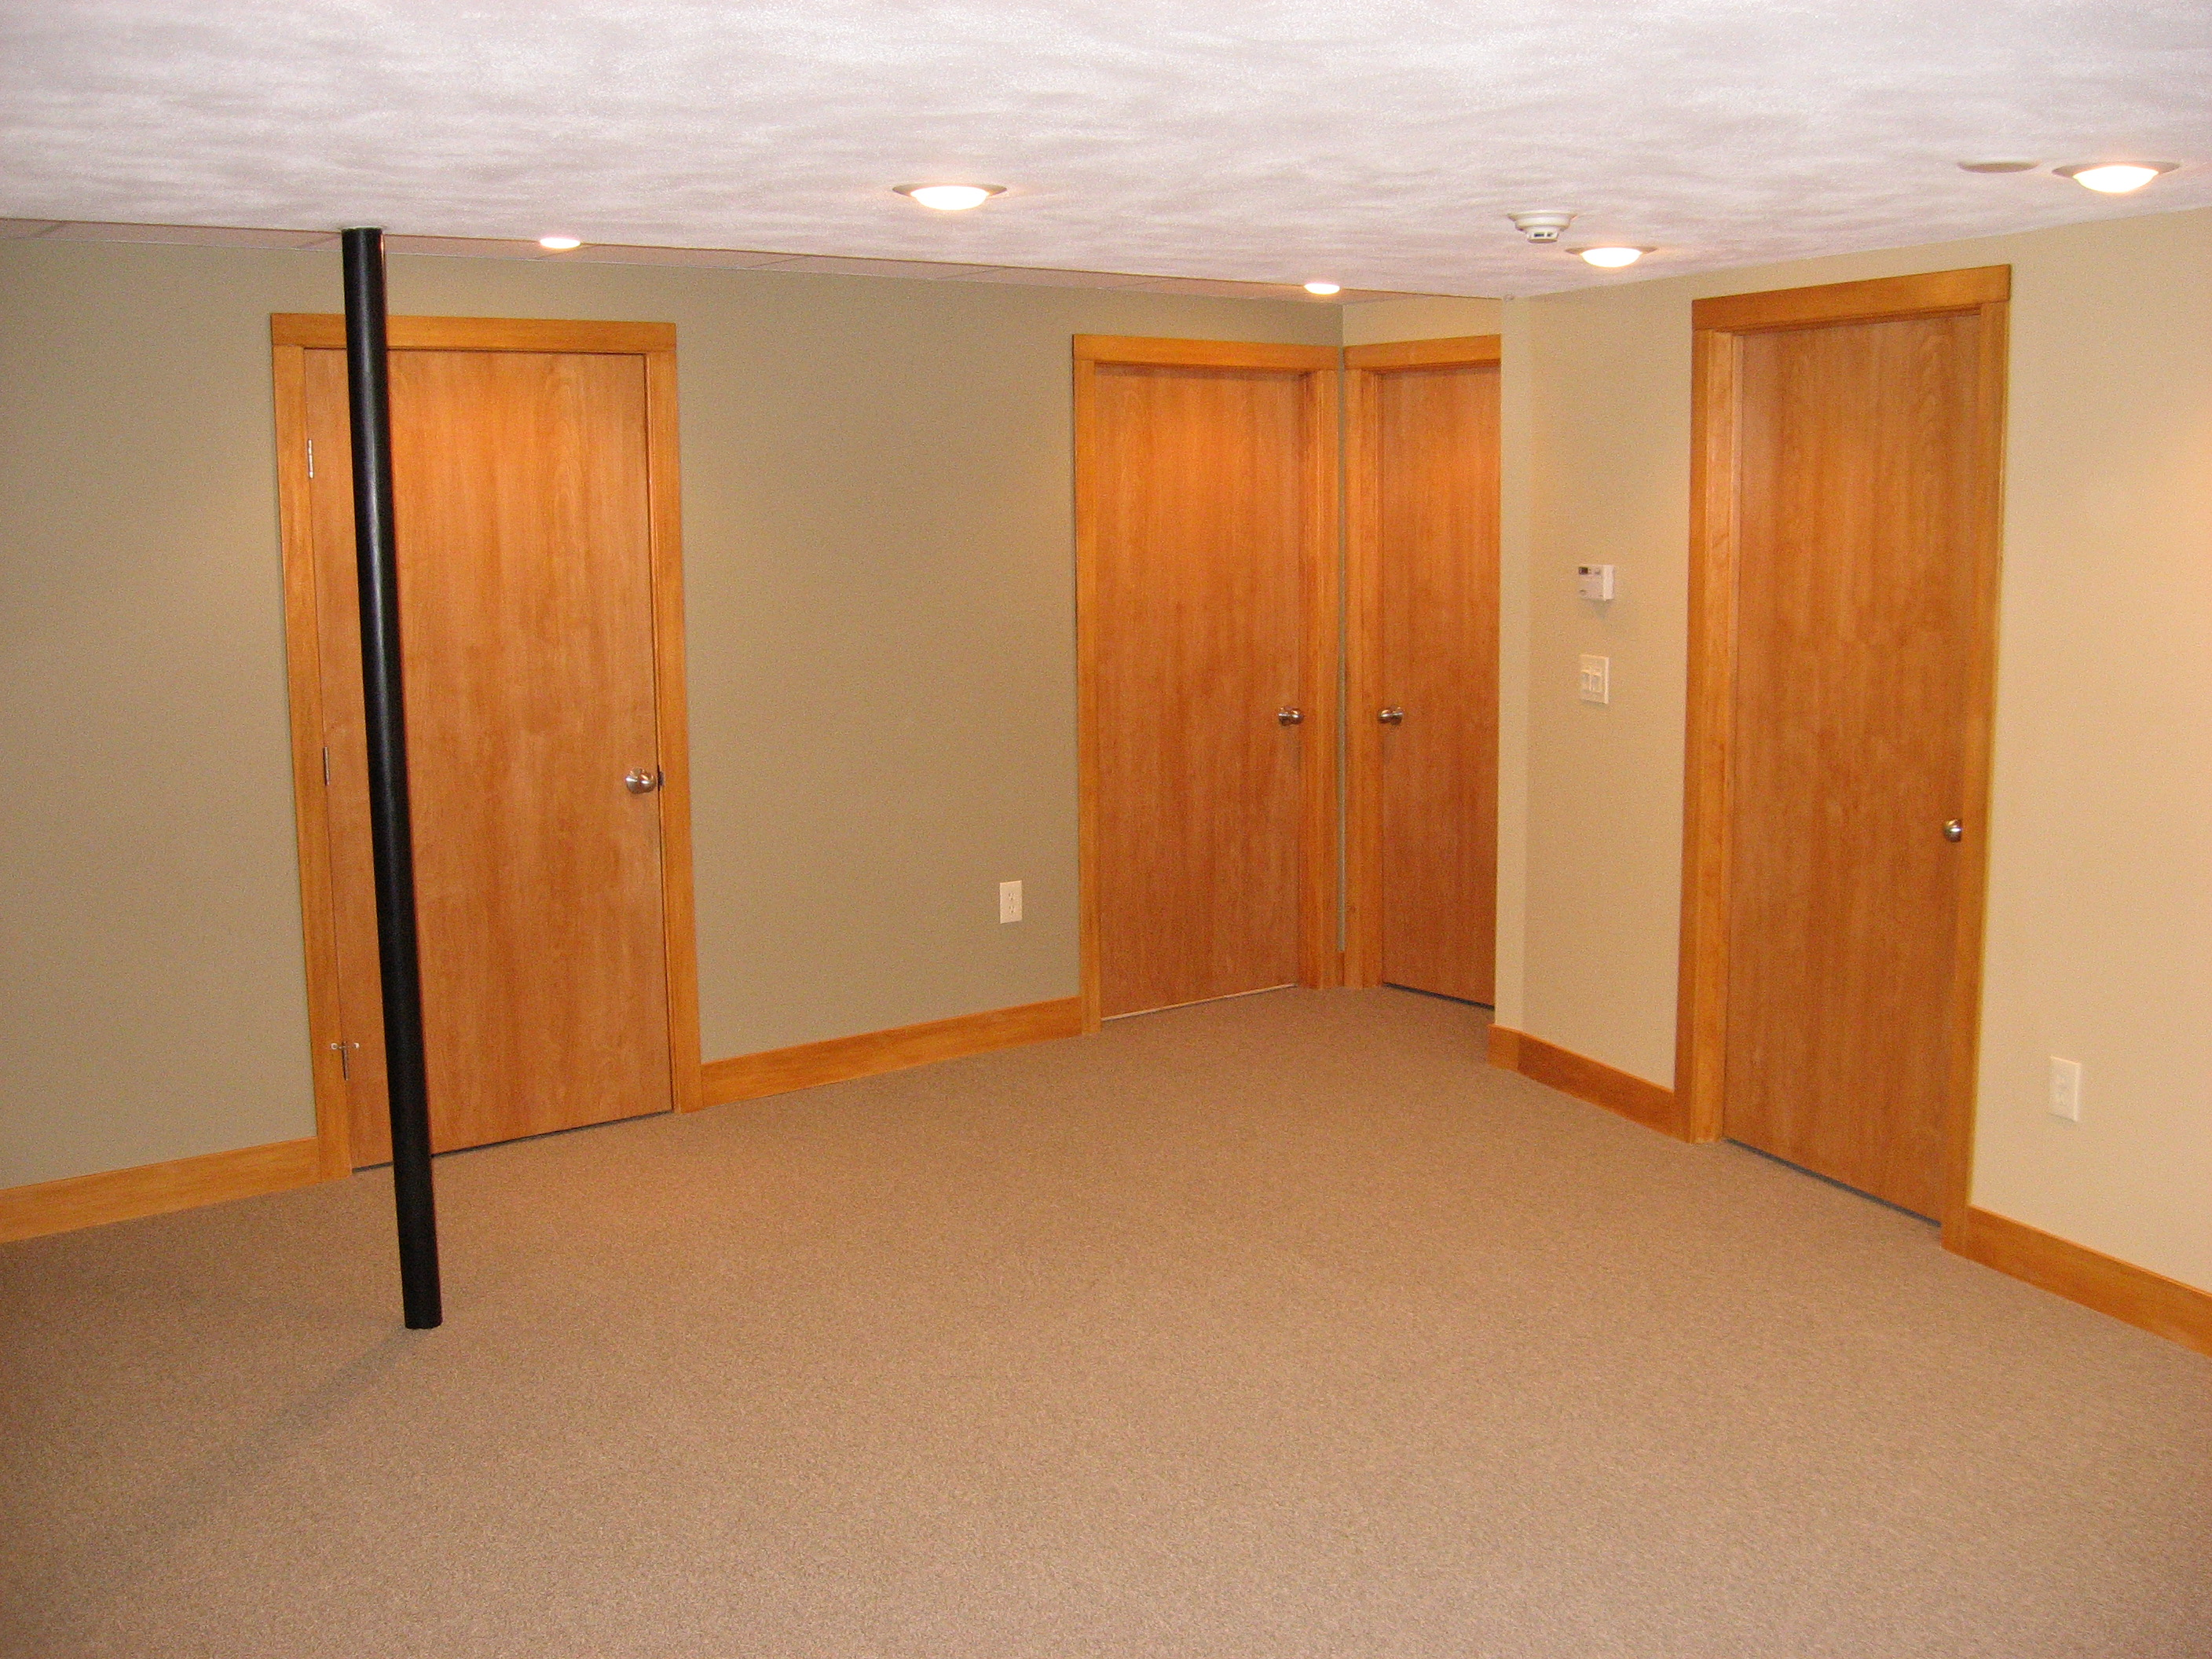 lighting for basements. Finished Basement Renovation With Stained Birch Doors, Poplar Baseboard And Casing, Recessed Lighting For Basements